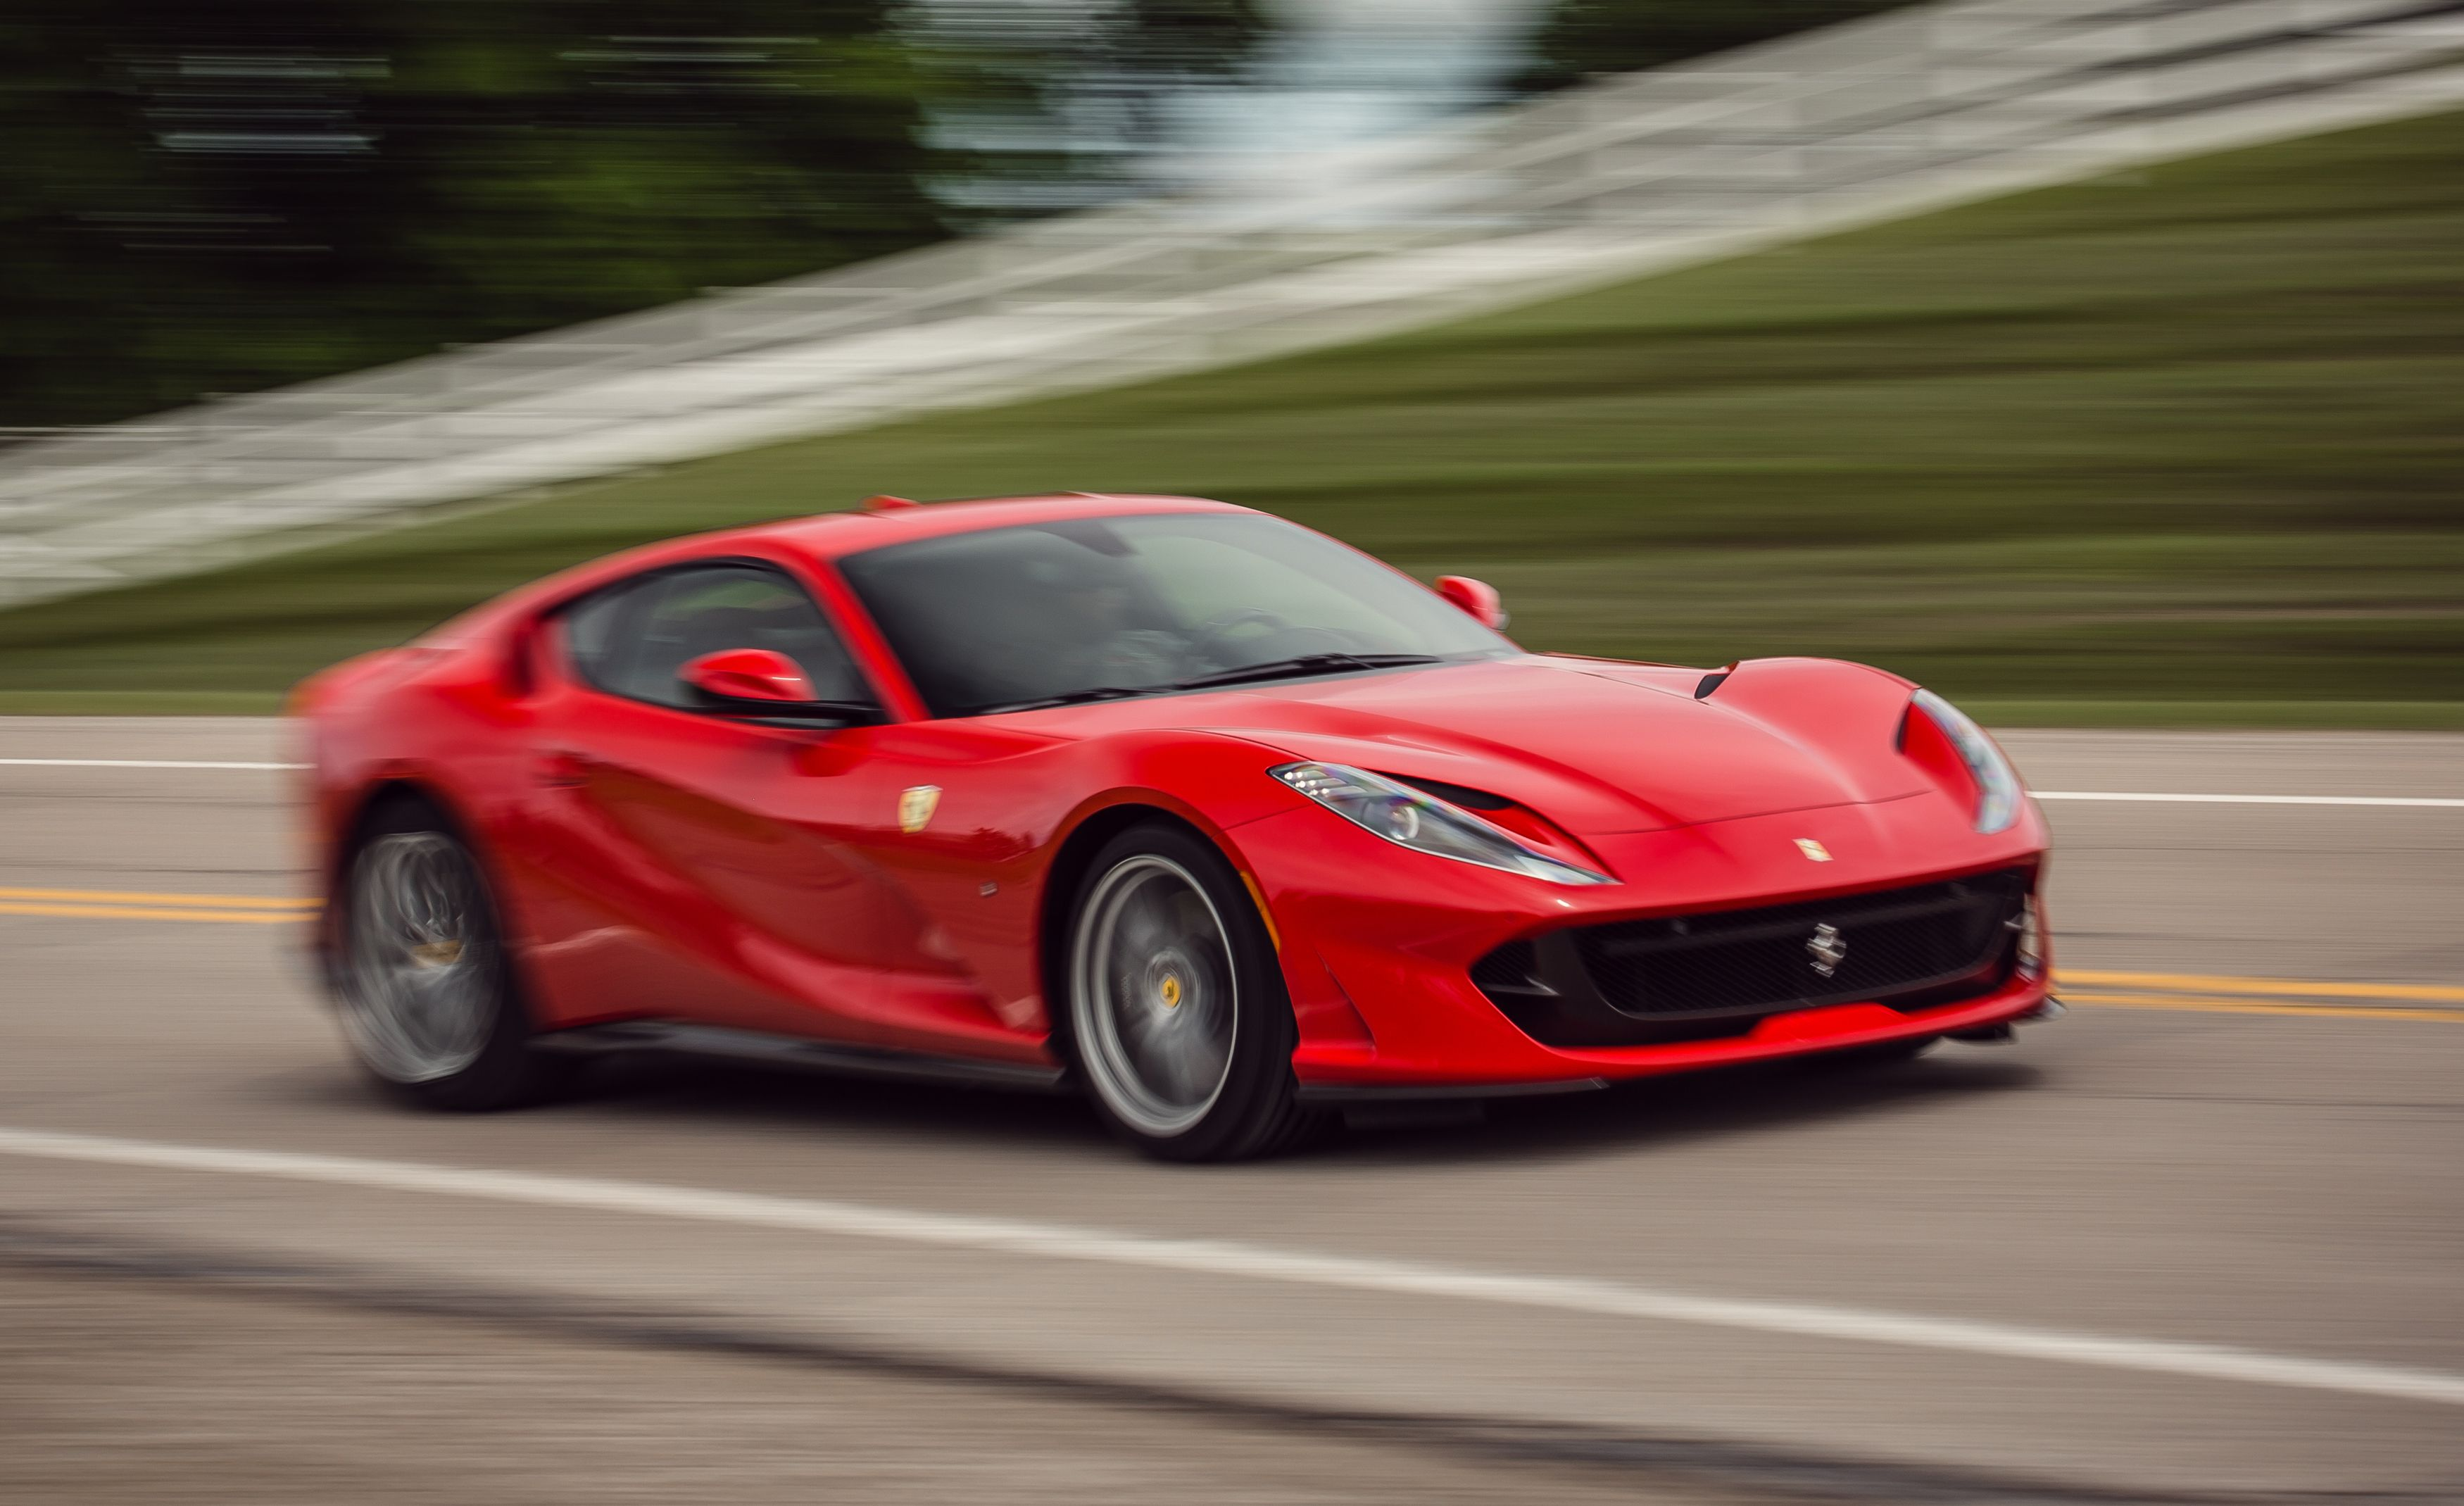 2018 Ferrari 812 Superfast Reviews Ferrari 812 Superfast Price